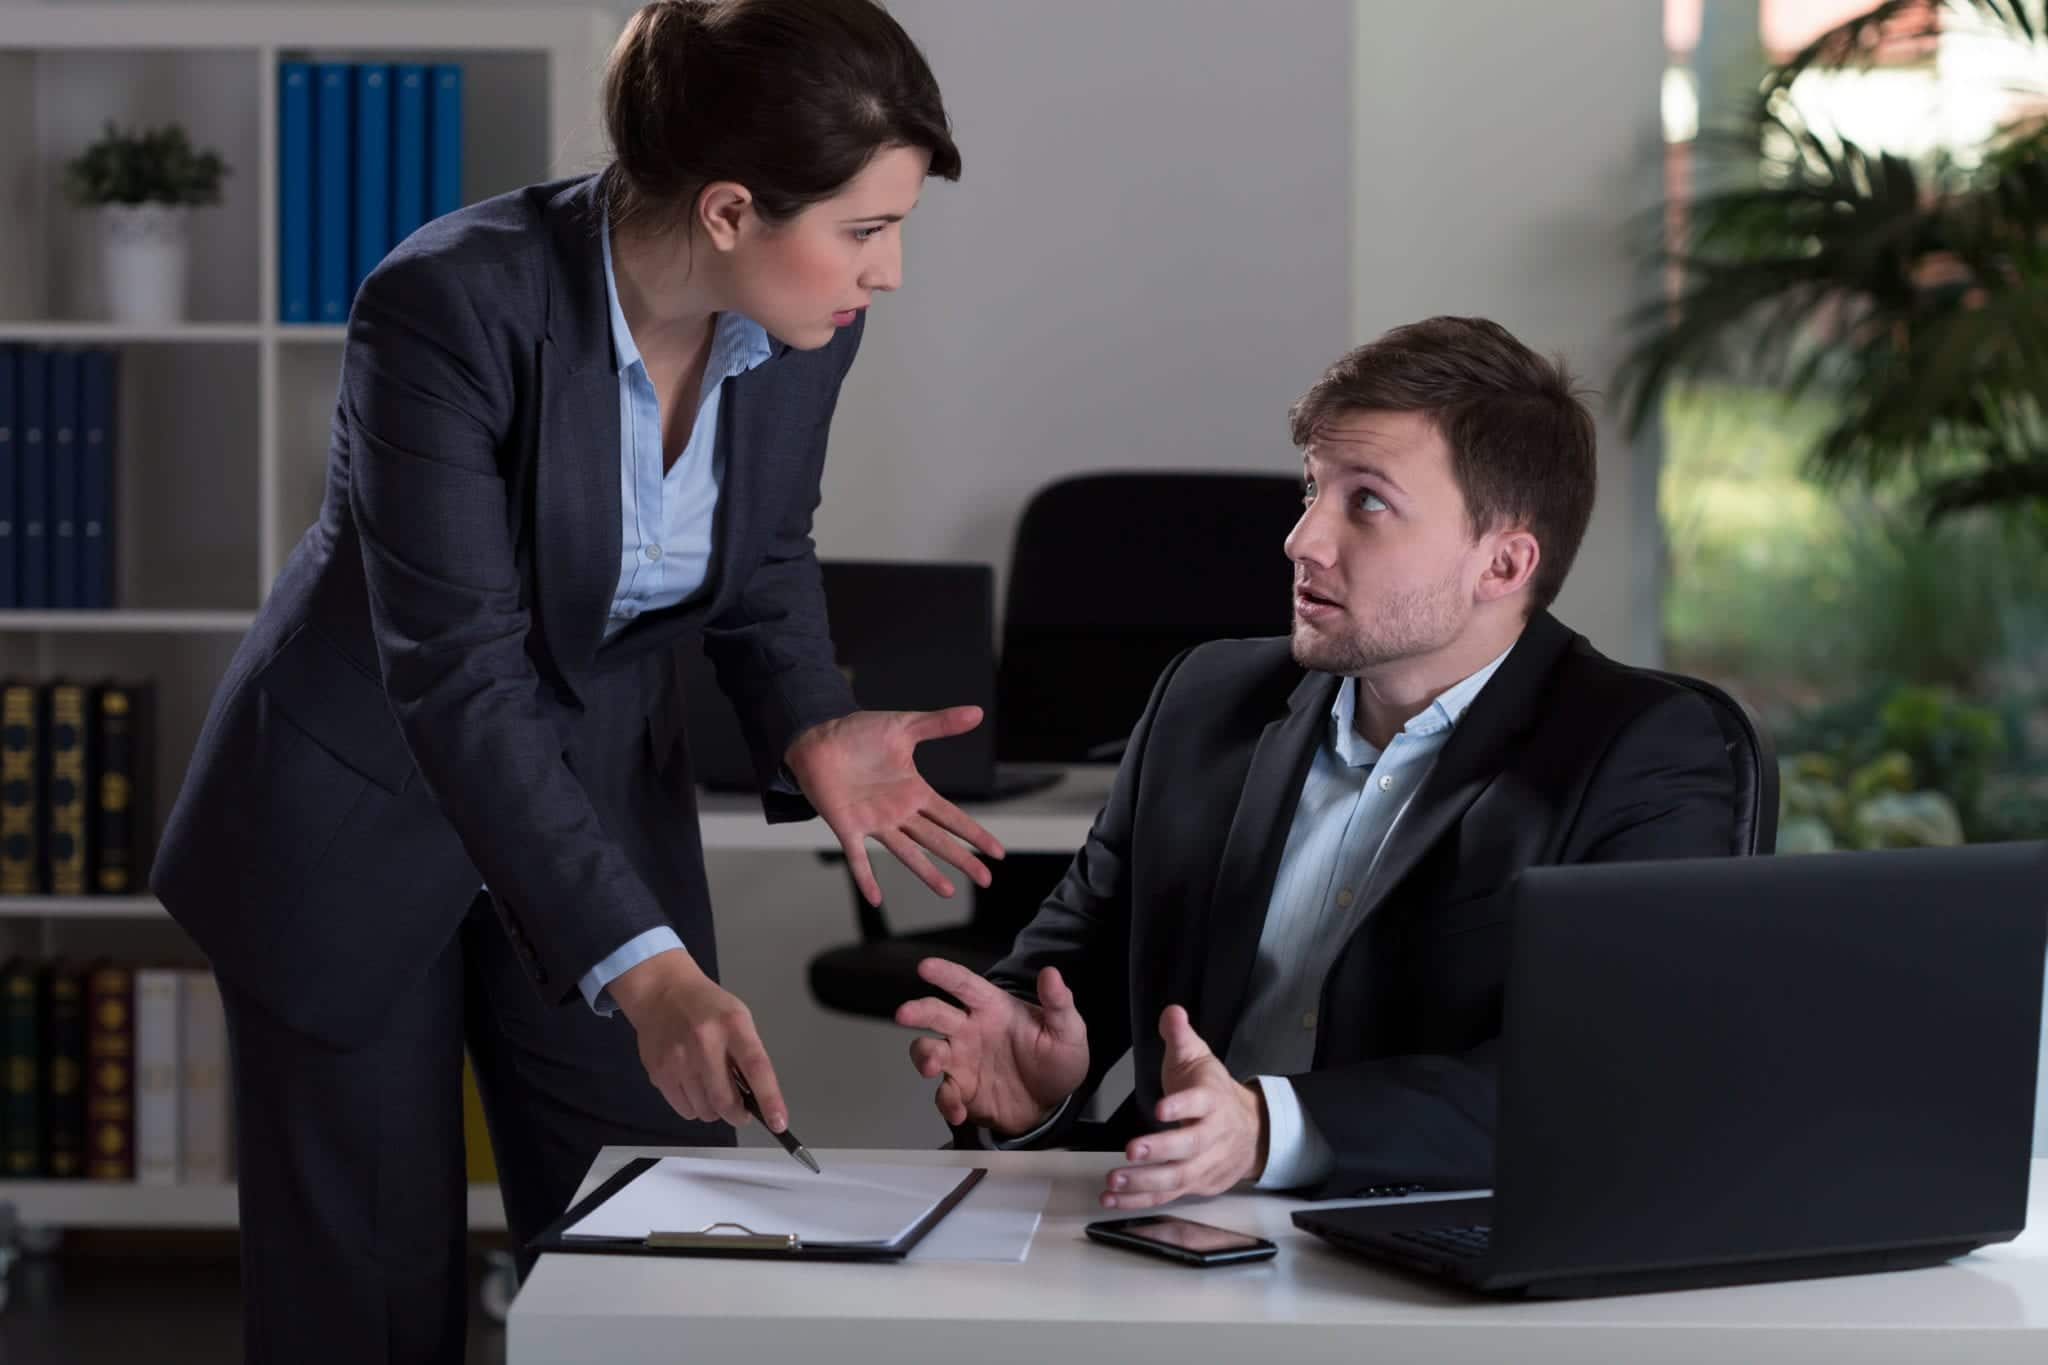 Workplace Theft in Texas Your Boss Says You Stole – What Now